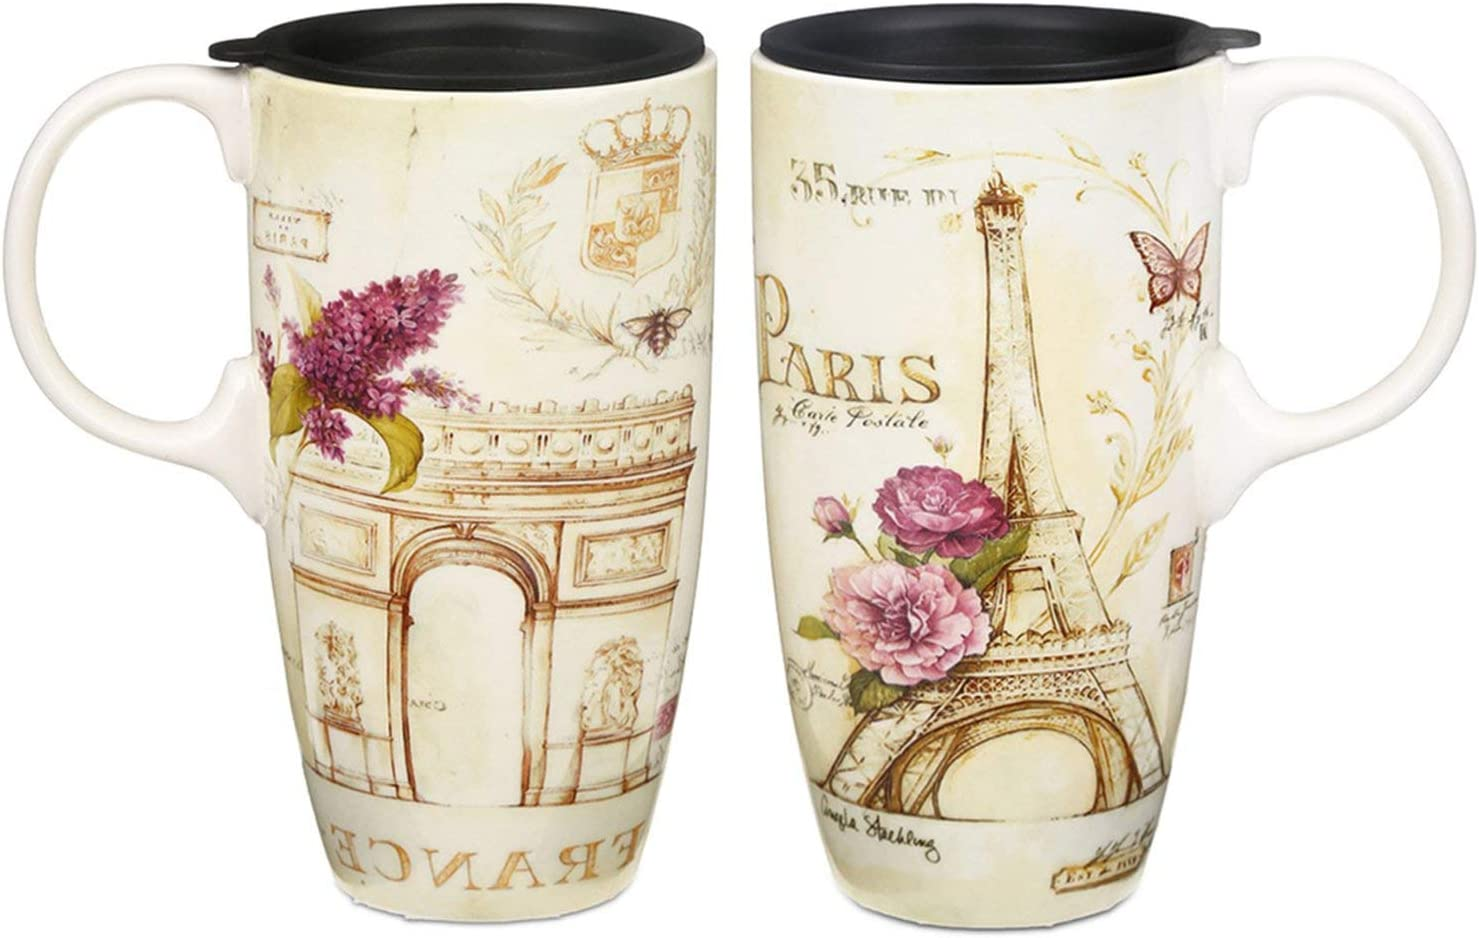 CEDAR HOME Travel Coffee Ceramic Mug Porcelain Latte Tea Cup With Lid in Gift Box 17oz., France Eiffel Tower, 2 Pack